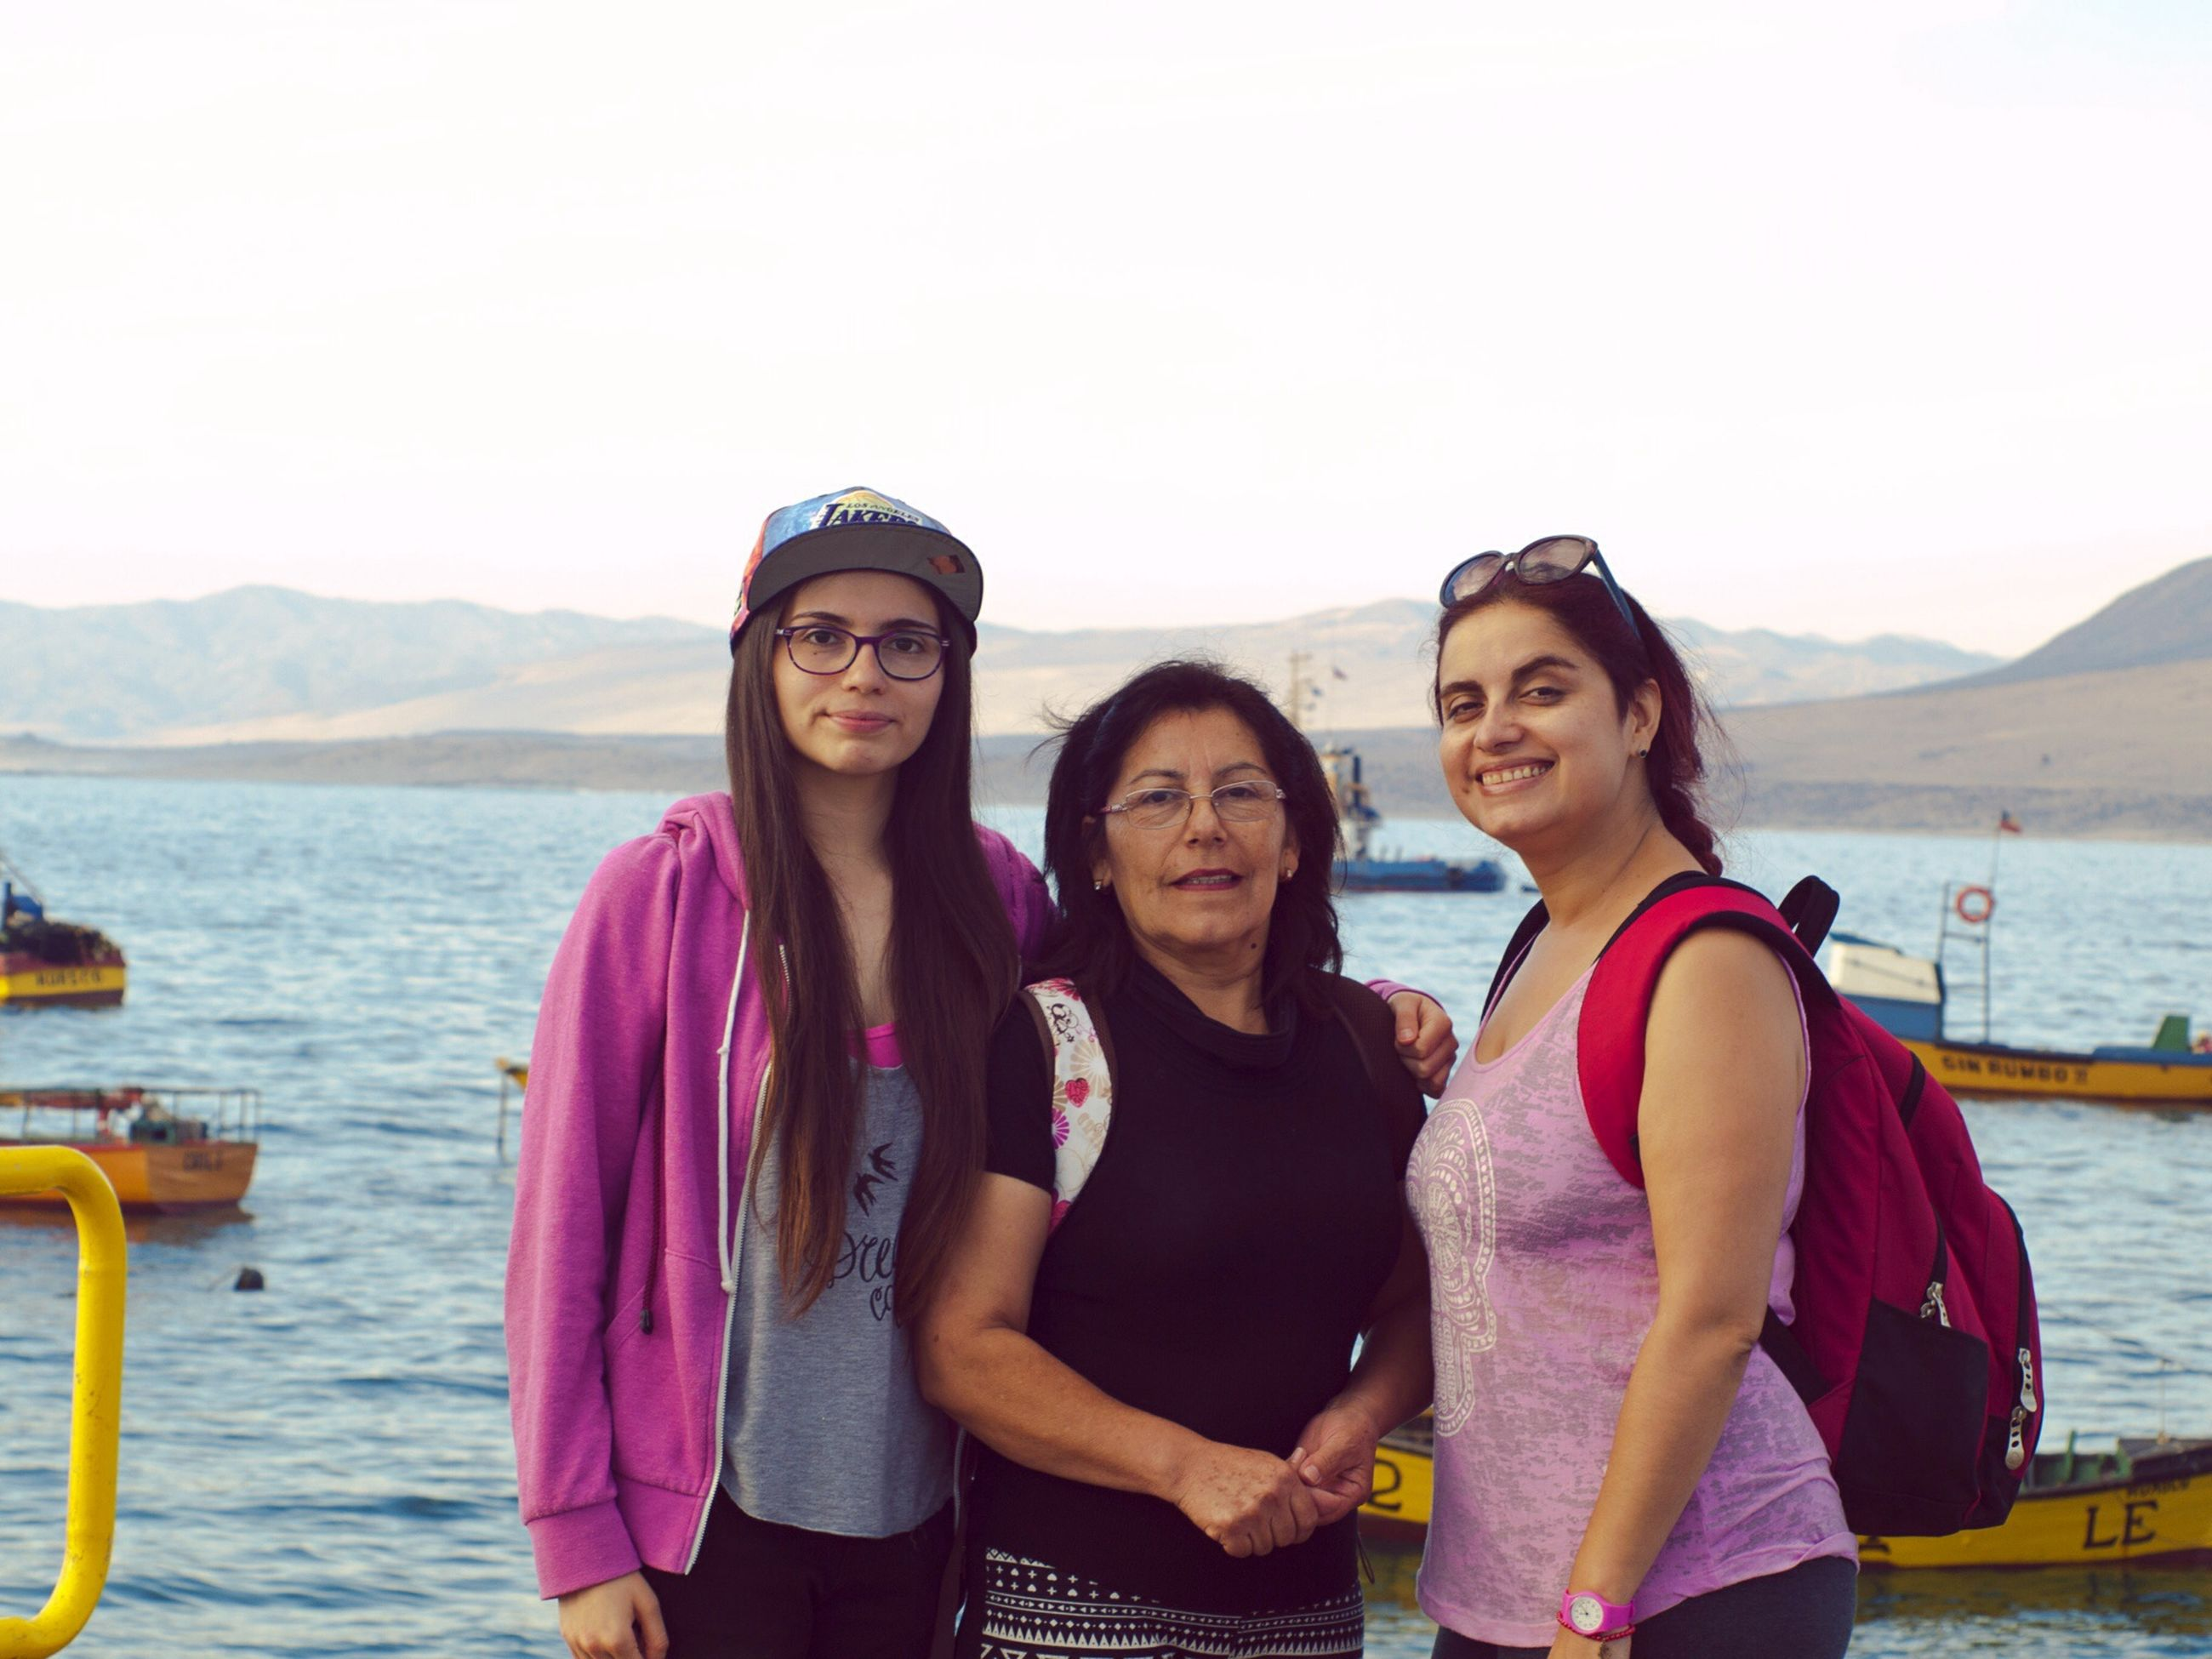 togetherness, lifestyles, leisure activity, bonding, water, casual clothing, person, love, friendship, smiling, young adult, looking at camera, happiness, portrait, vacations, standing, young women, front view